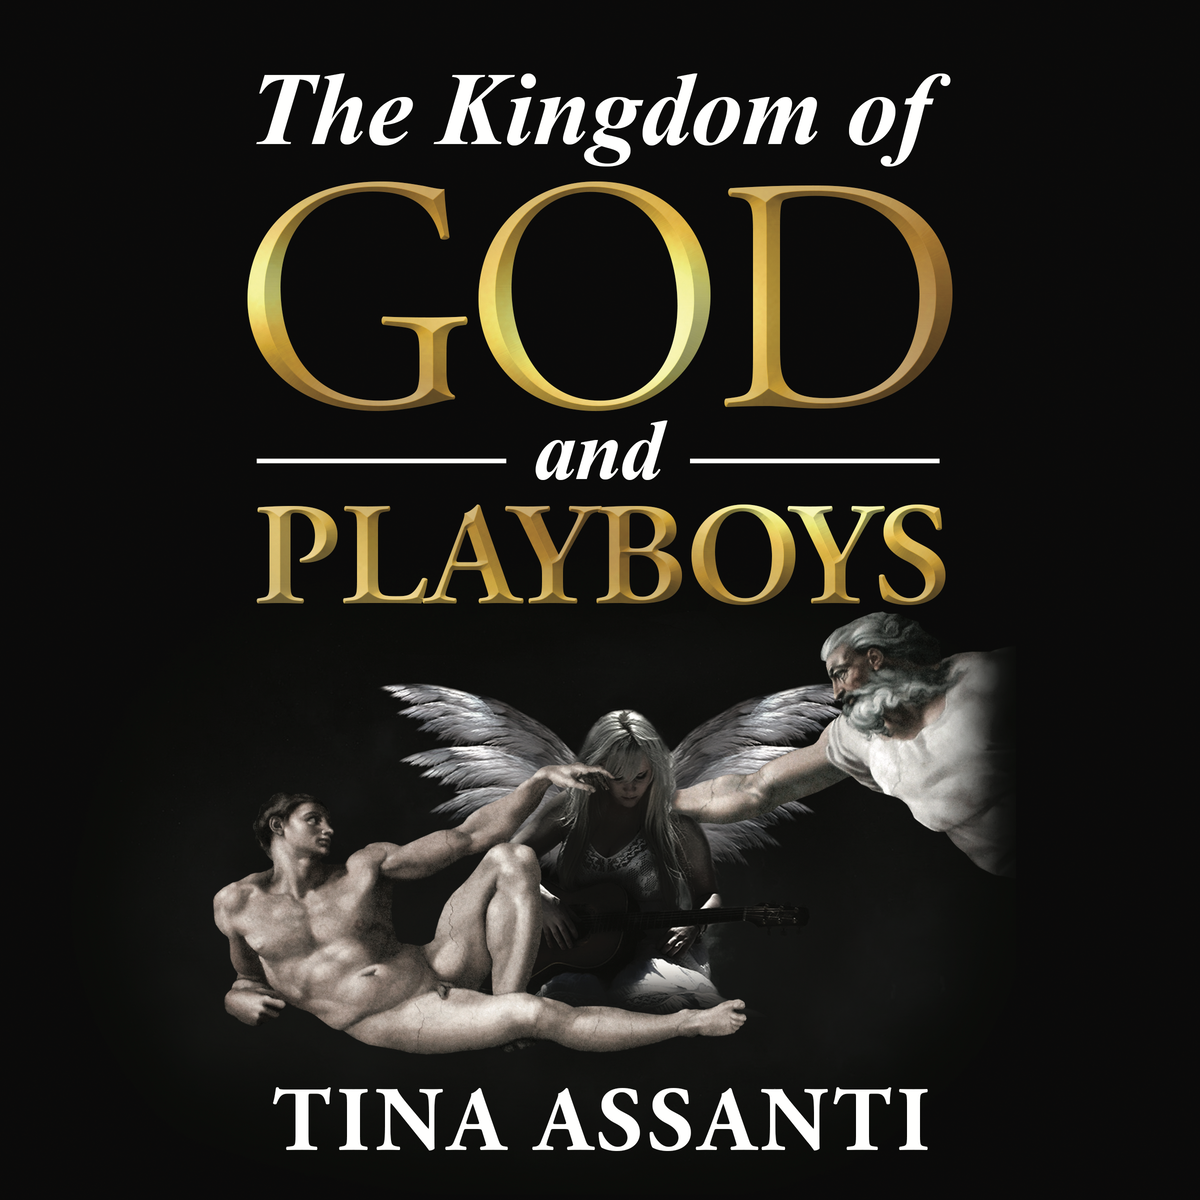 The Kingdom of God and Playboys